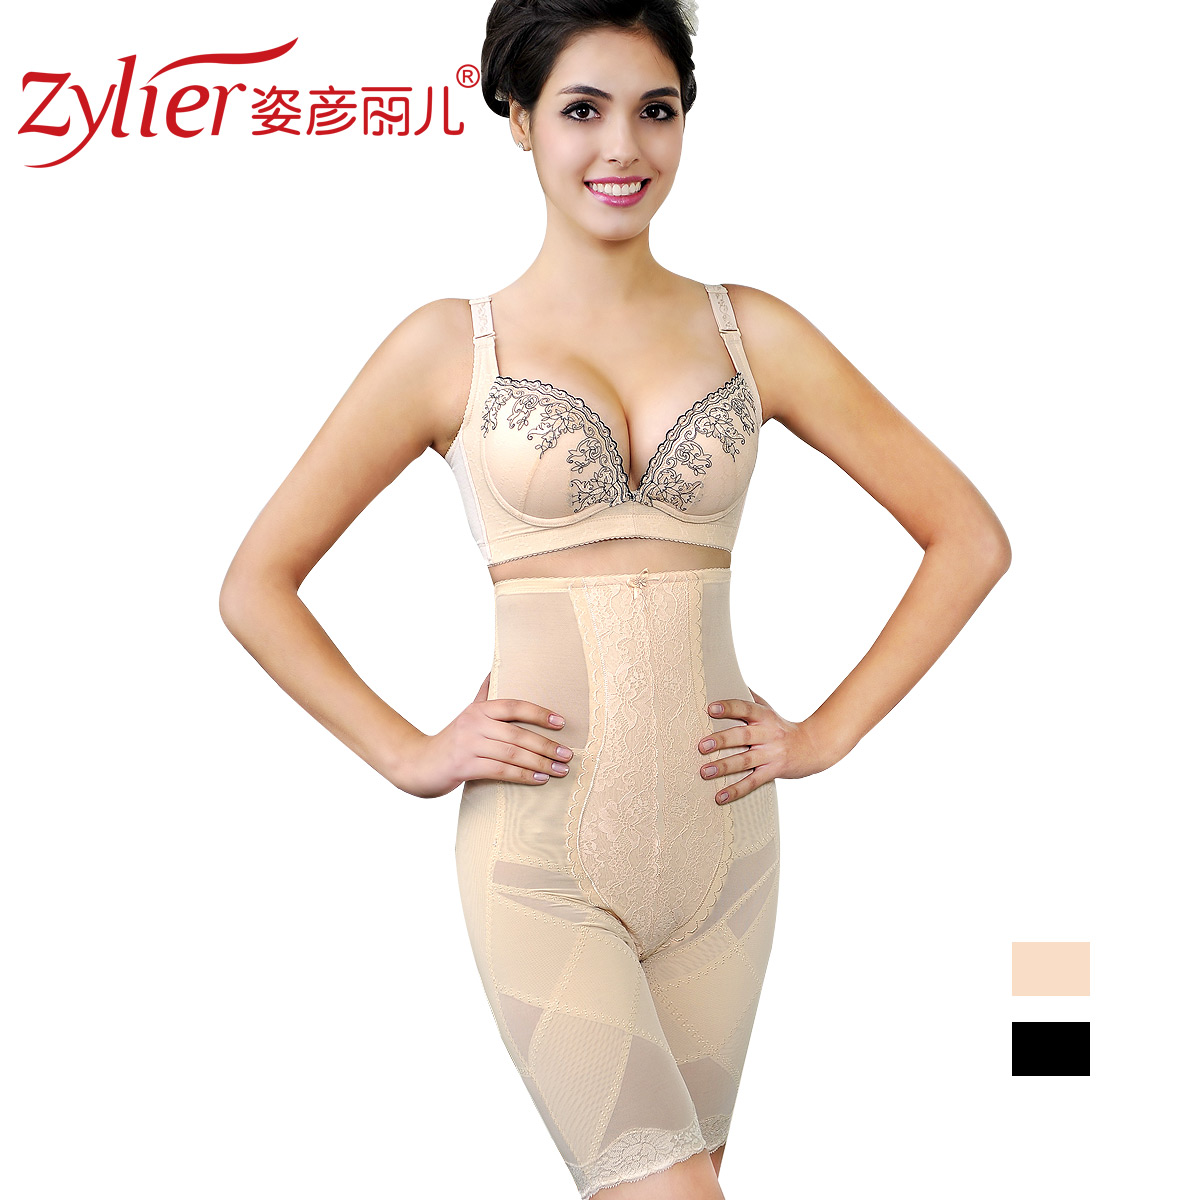 Peerlessly beautiful evening high waist abdomen drawing pants butt-lifting pants solid color body shaping panties sk80